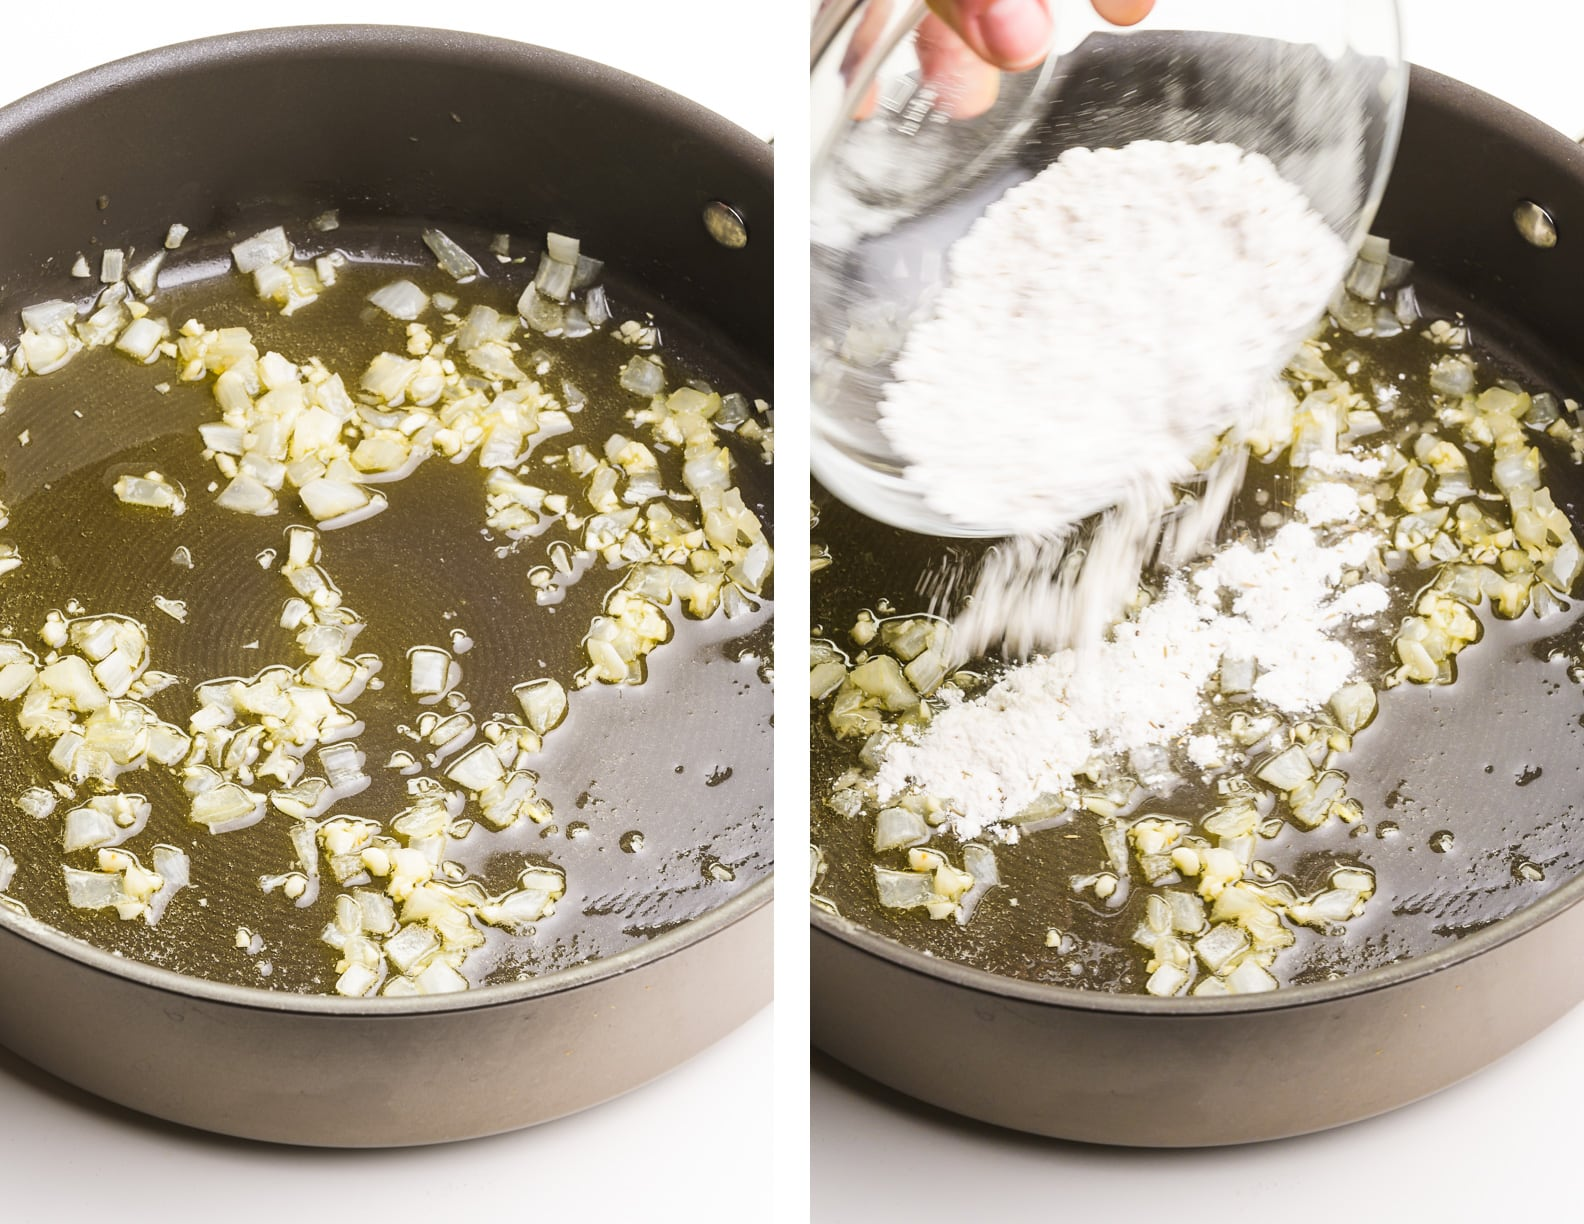 A collage of 2 images shows onions cooking in oil on one side and flour being poured into that mixture on the right.